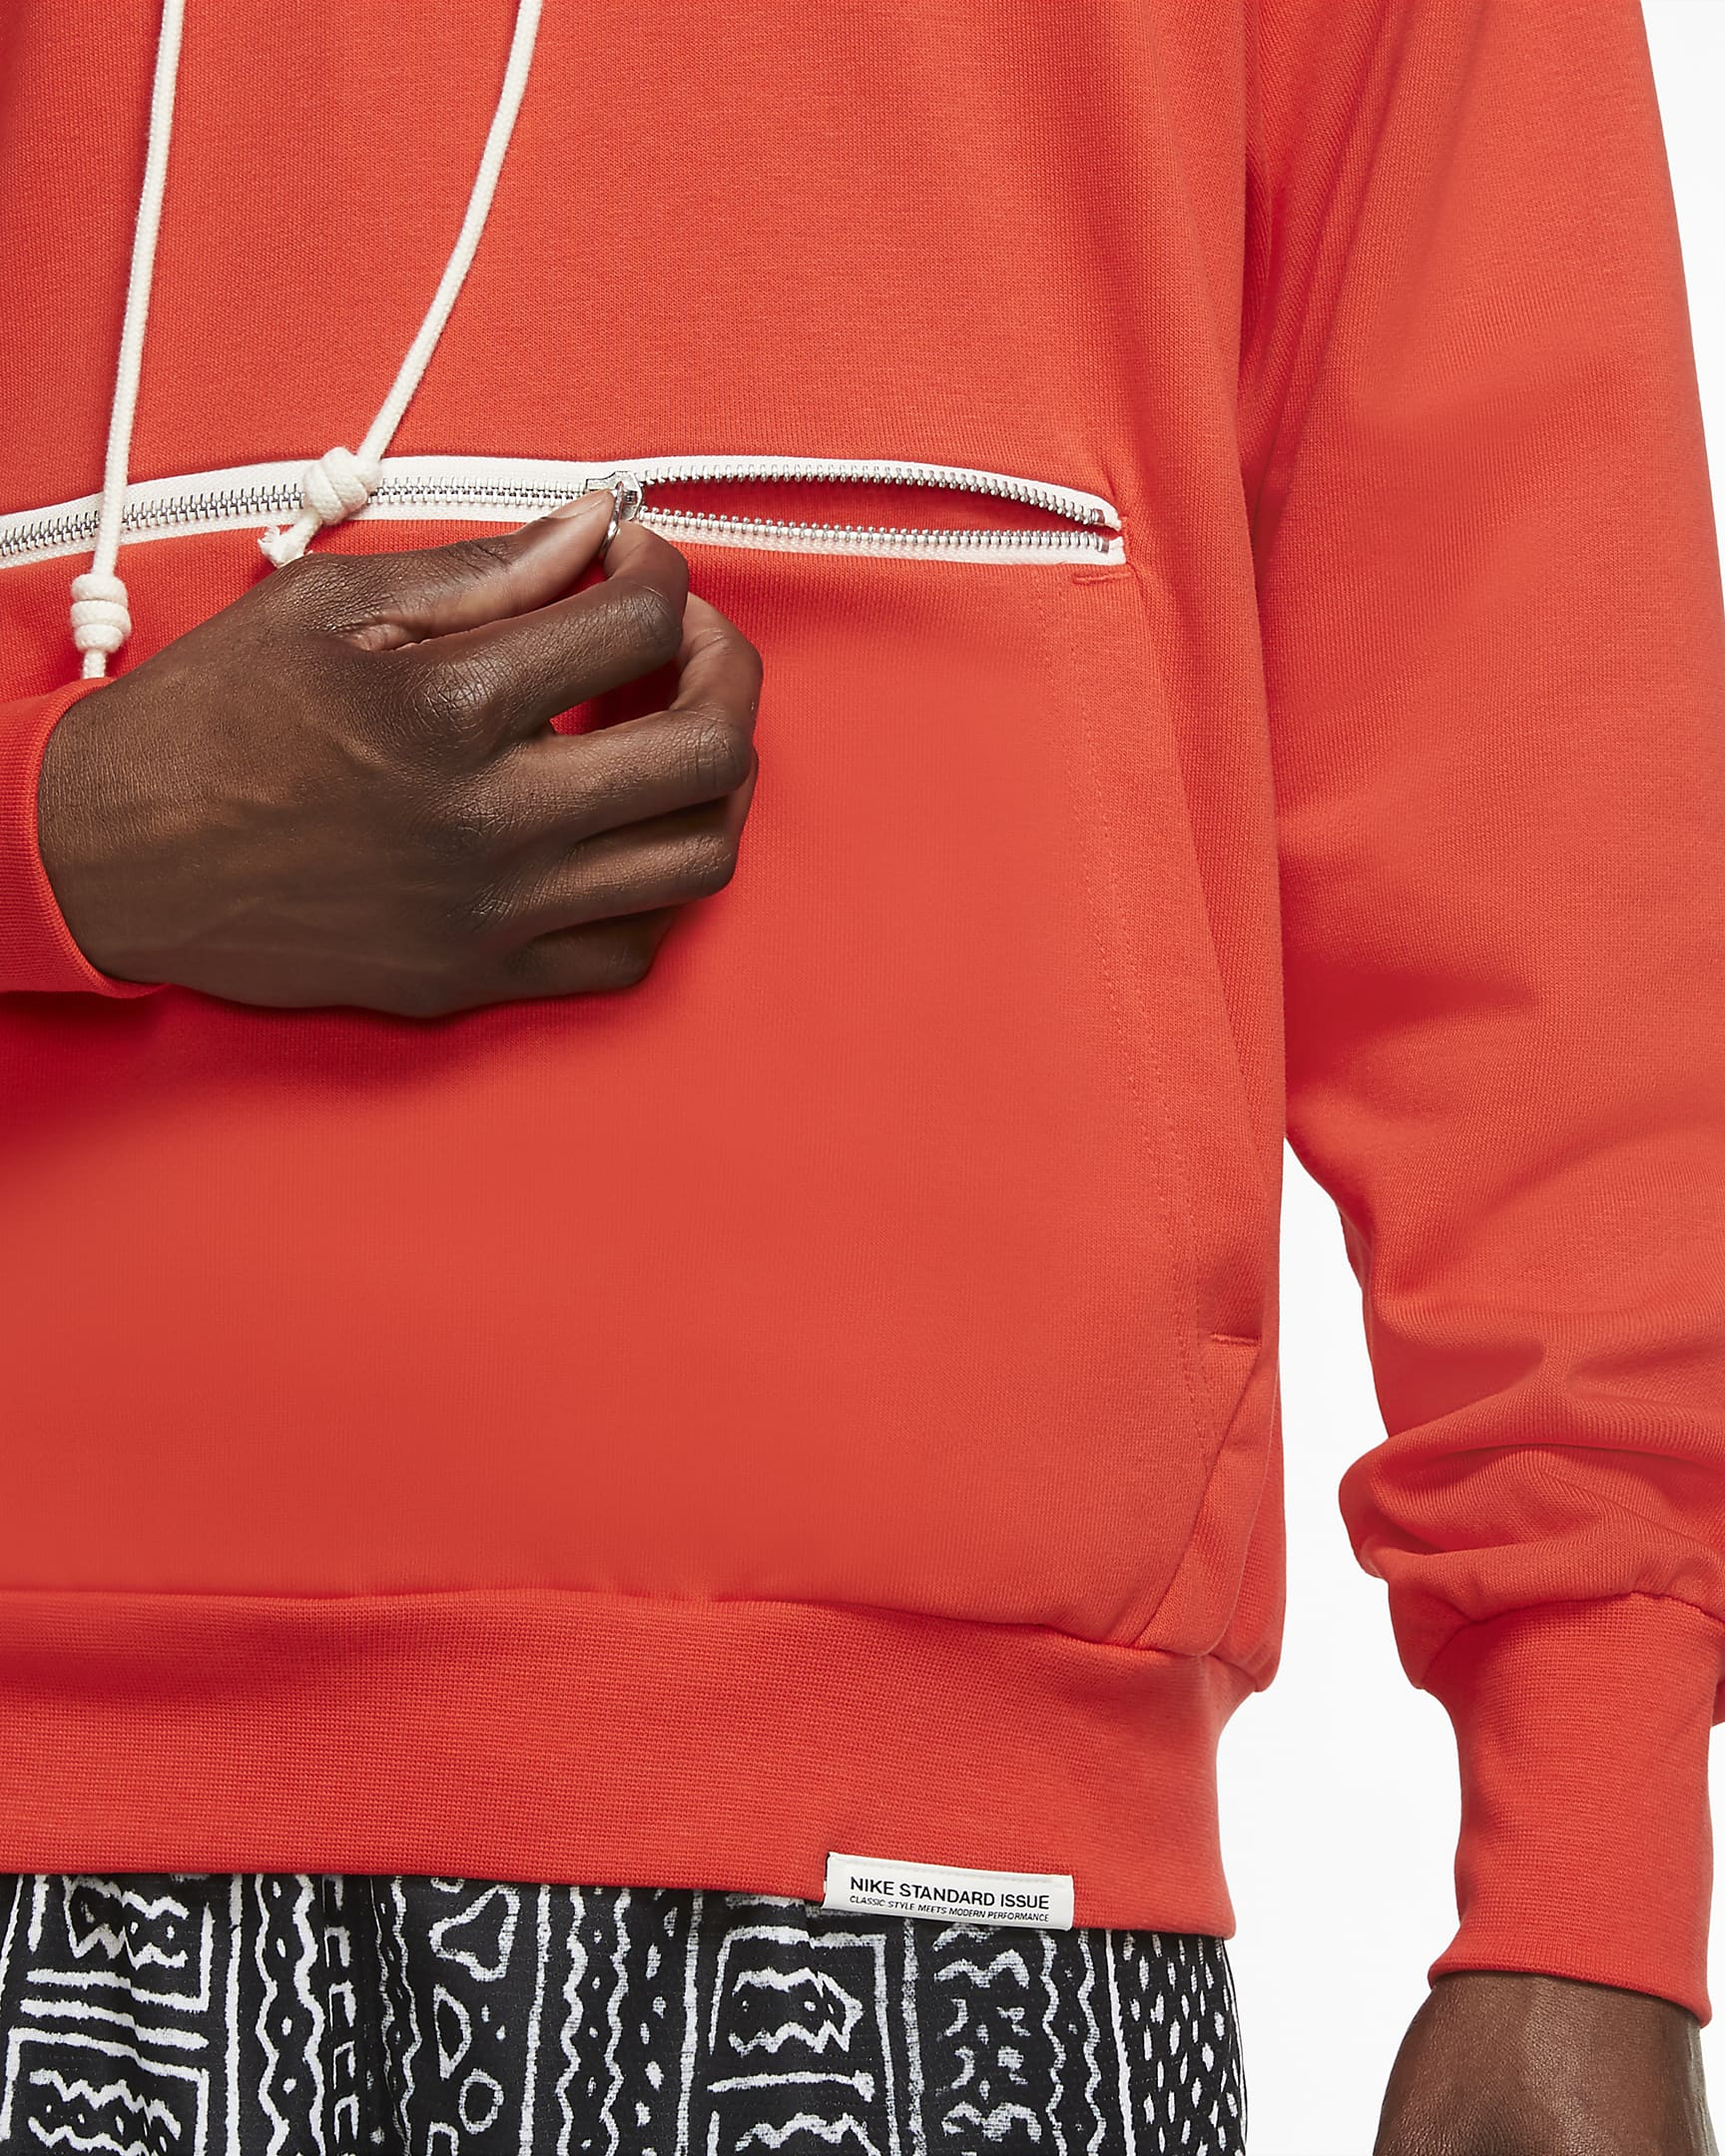 nike-standard-issue-mens-basketball-pullover-hoodie-tmtS0f-3.png